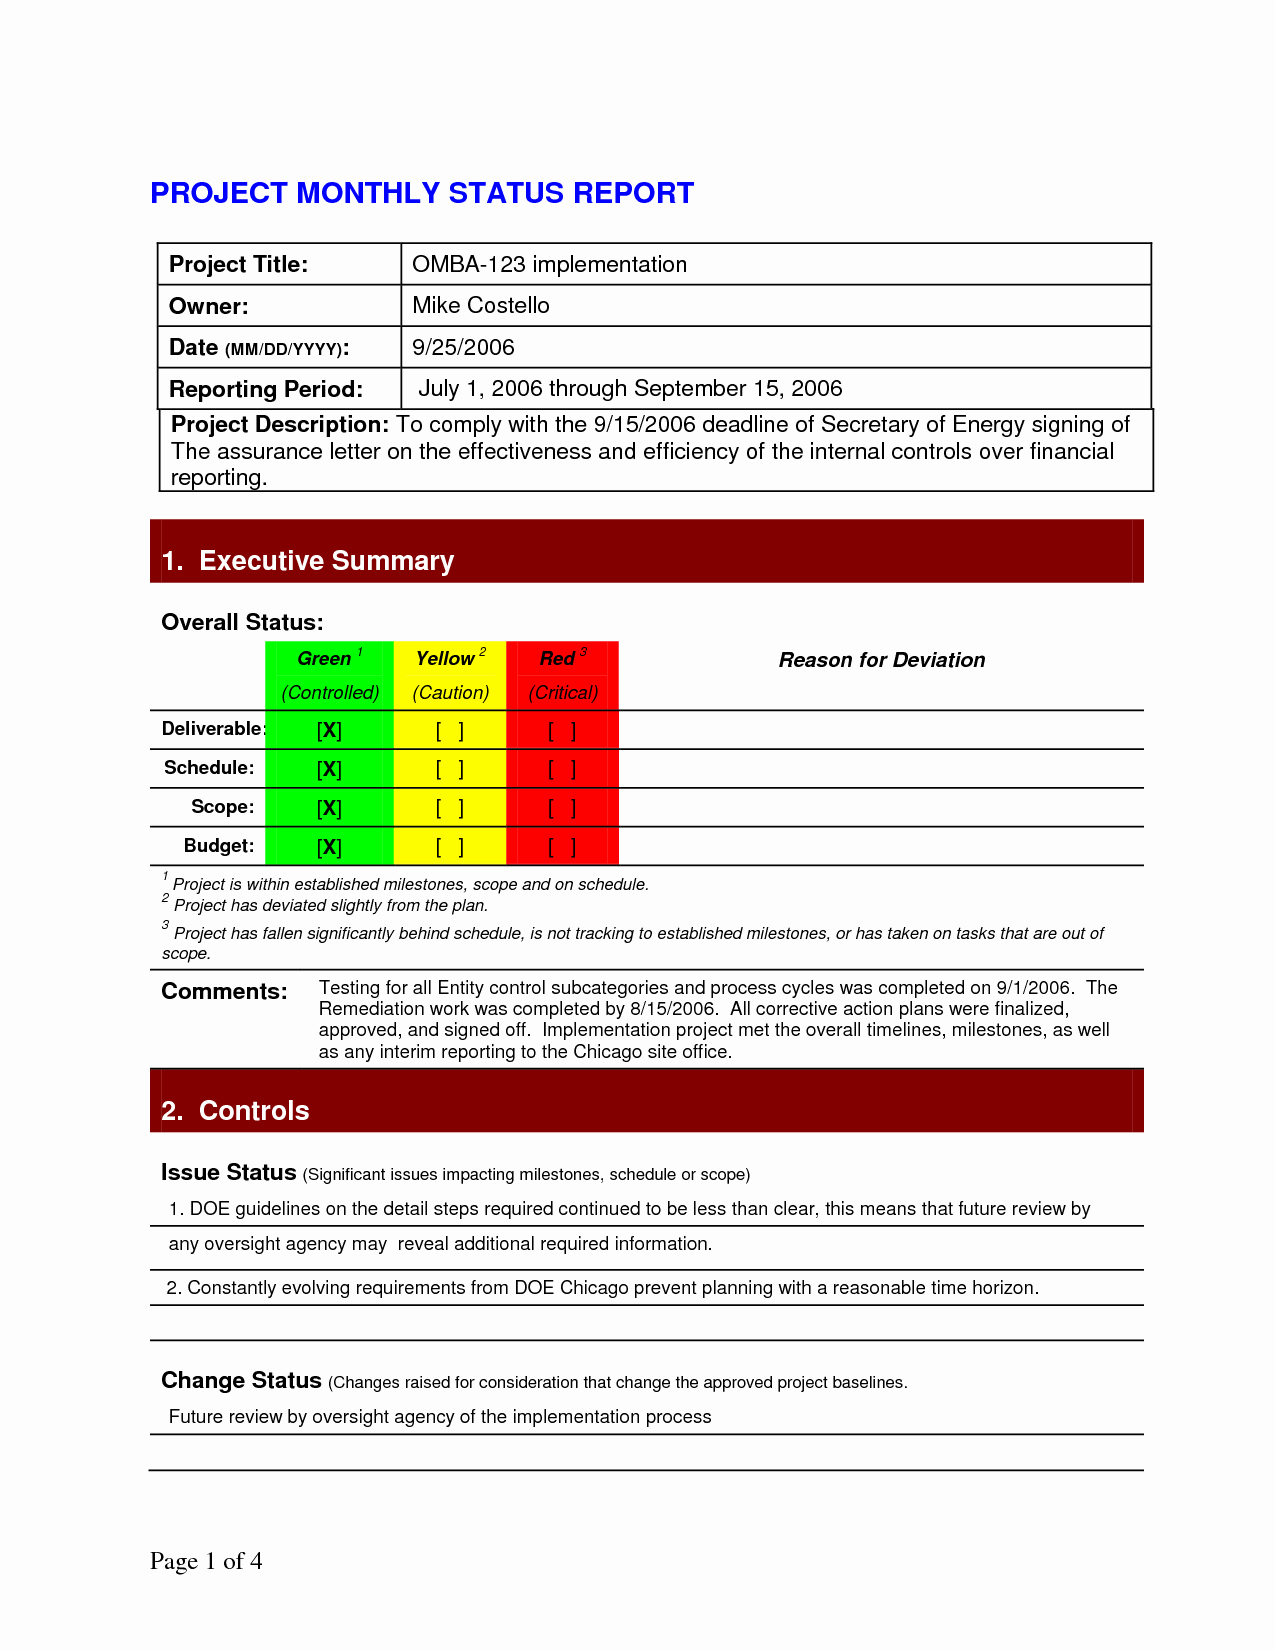 Project Management Status Report Template Inspirational Project Status Report Template 2dfahbab 1275×1650